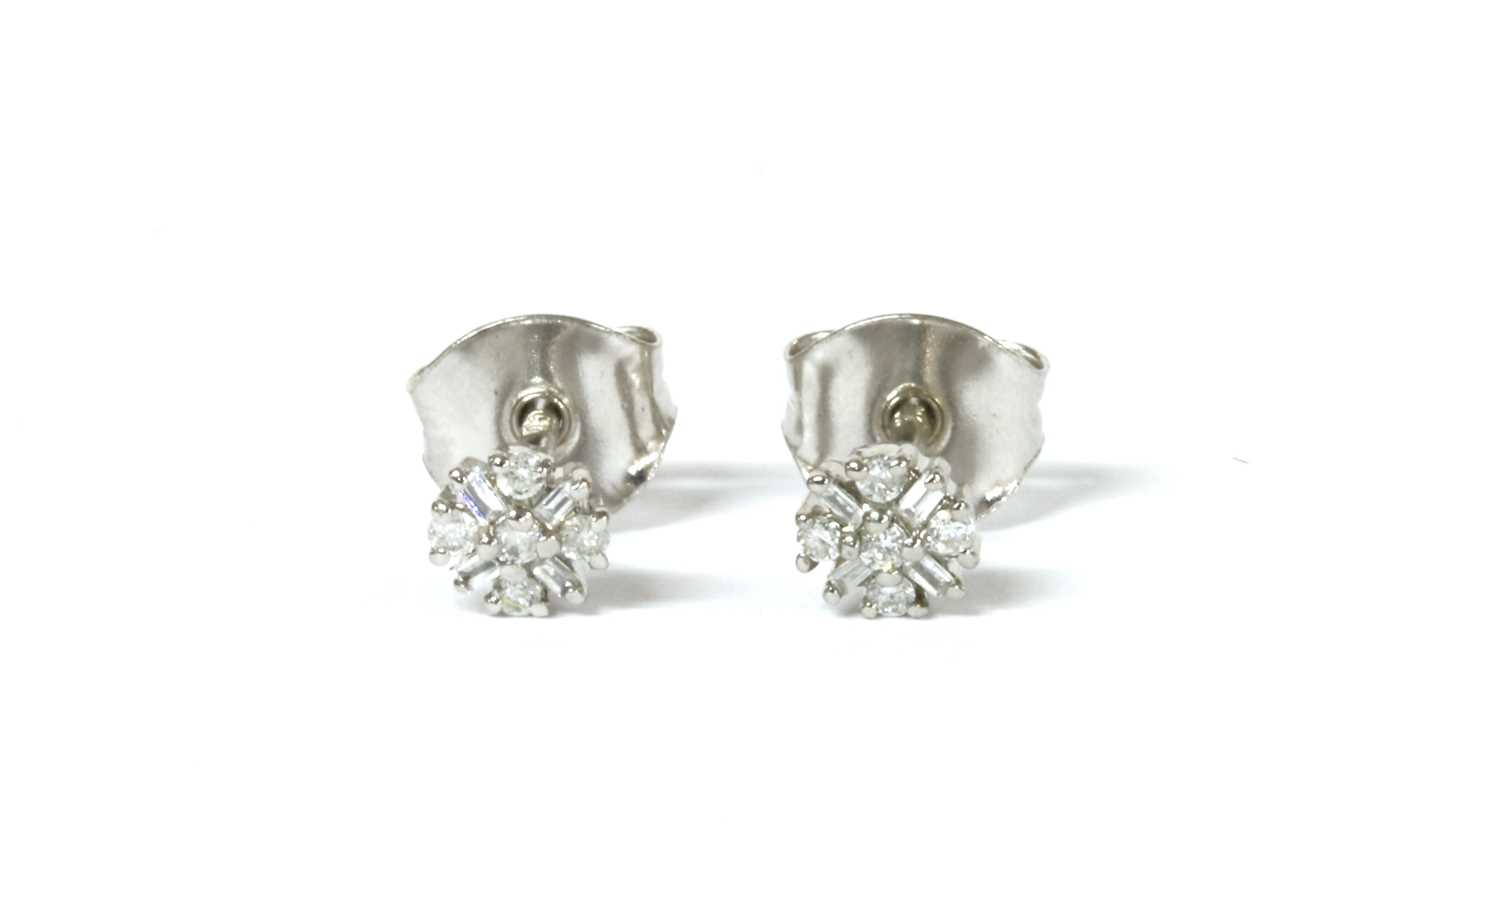 Lot 78 - A pair of white gold diamond cluster stud earrings